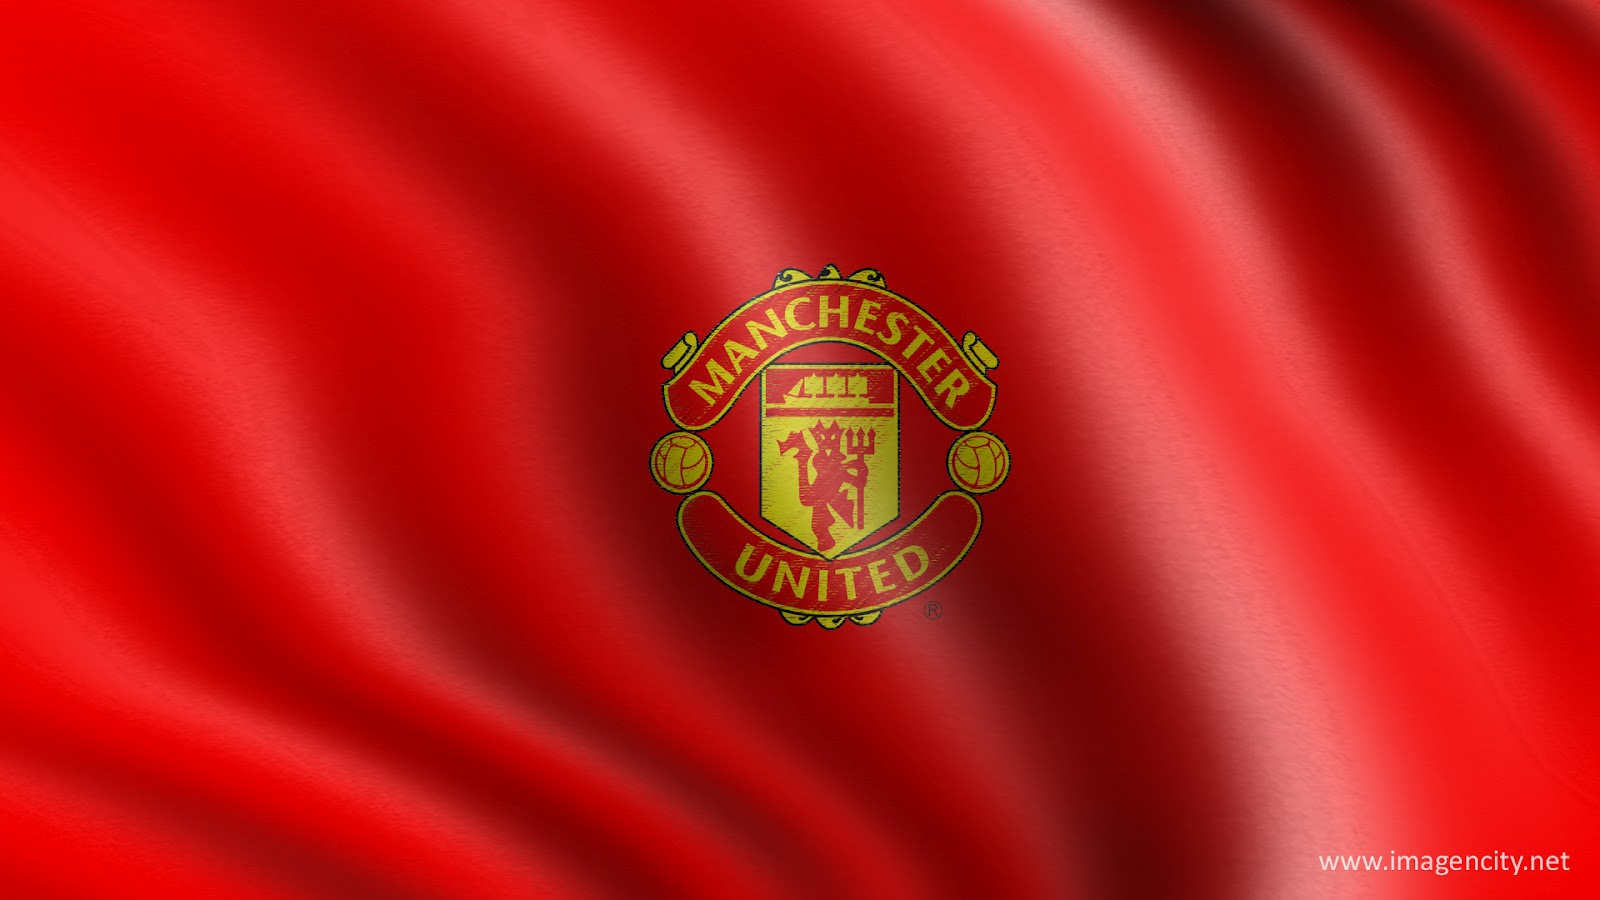 manchester united wallpapers hdimage - photo #27